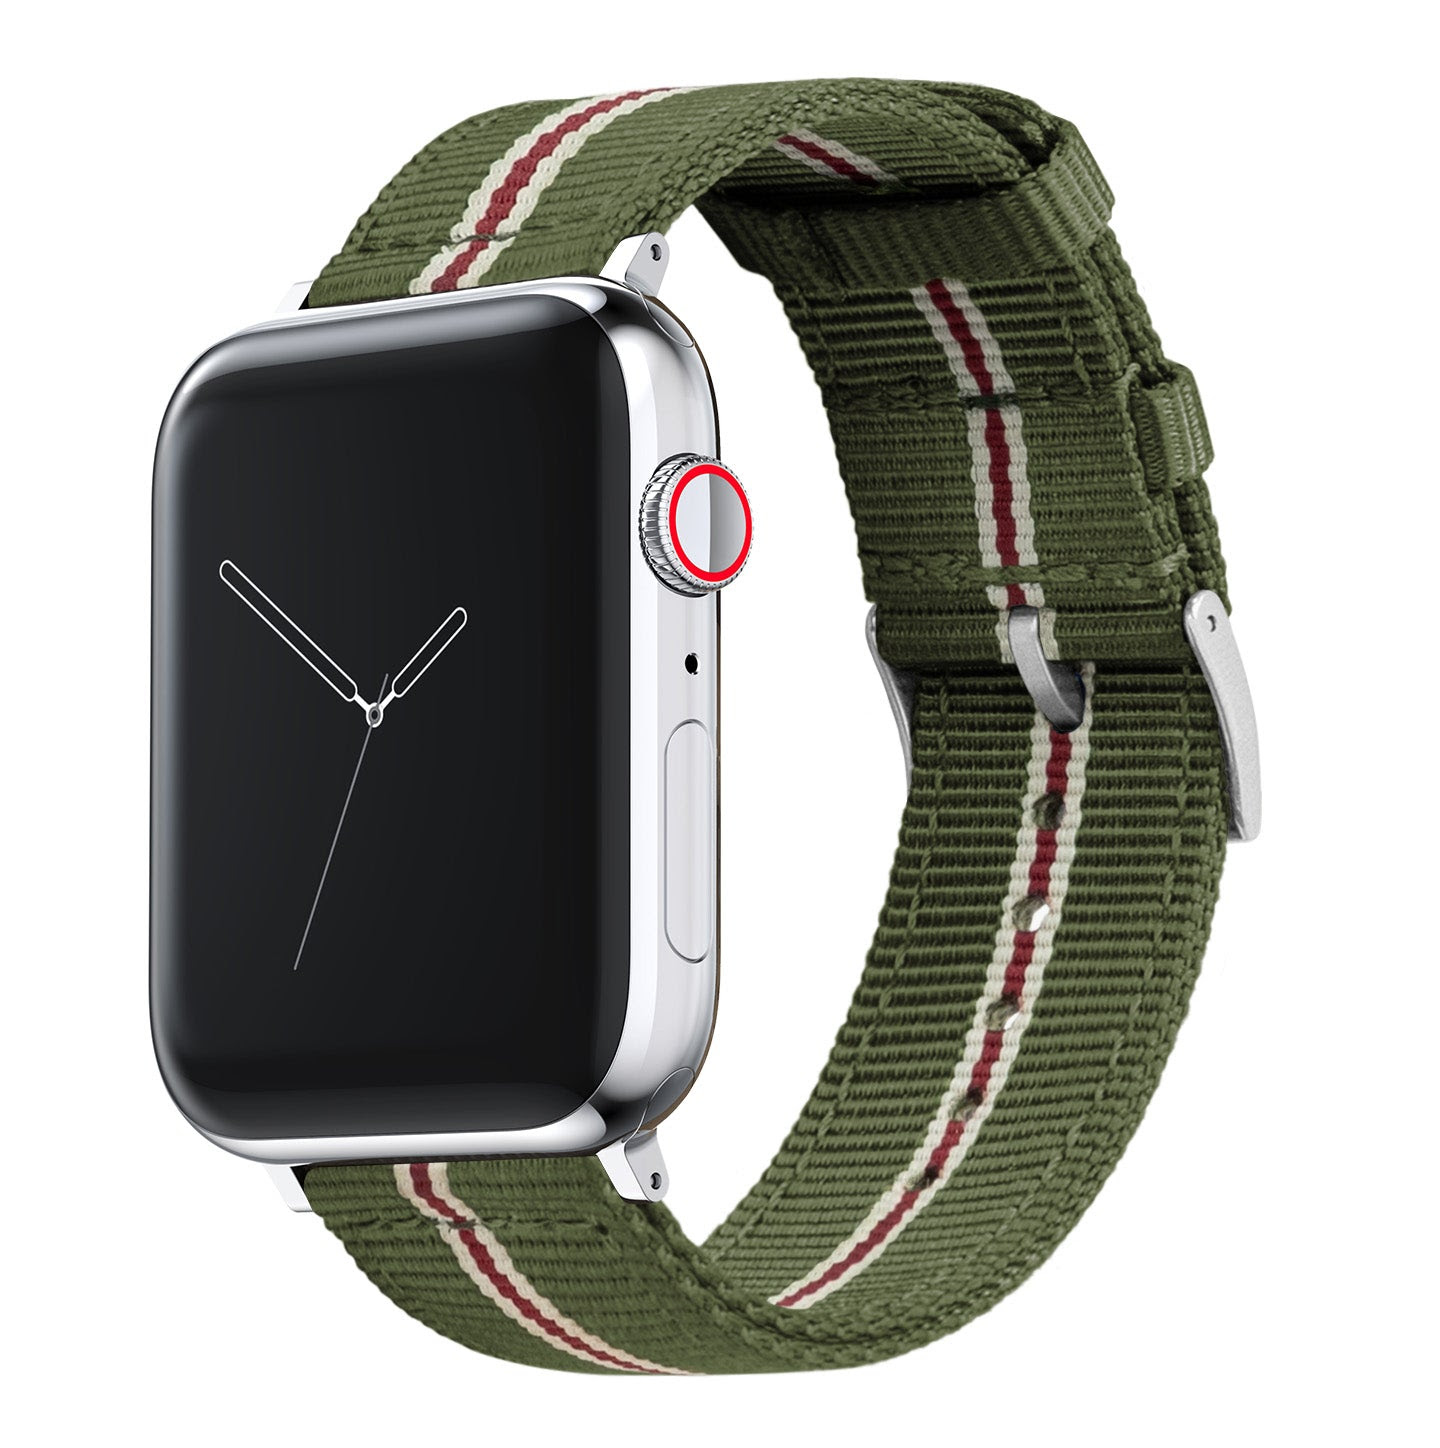 Image of Apple Watch | Two-piece NATO Style | Army Green & Crimson